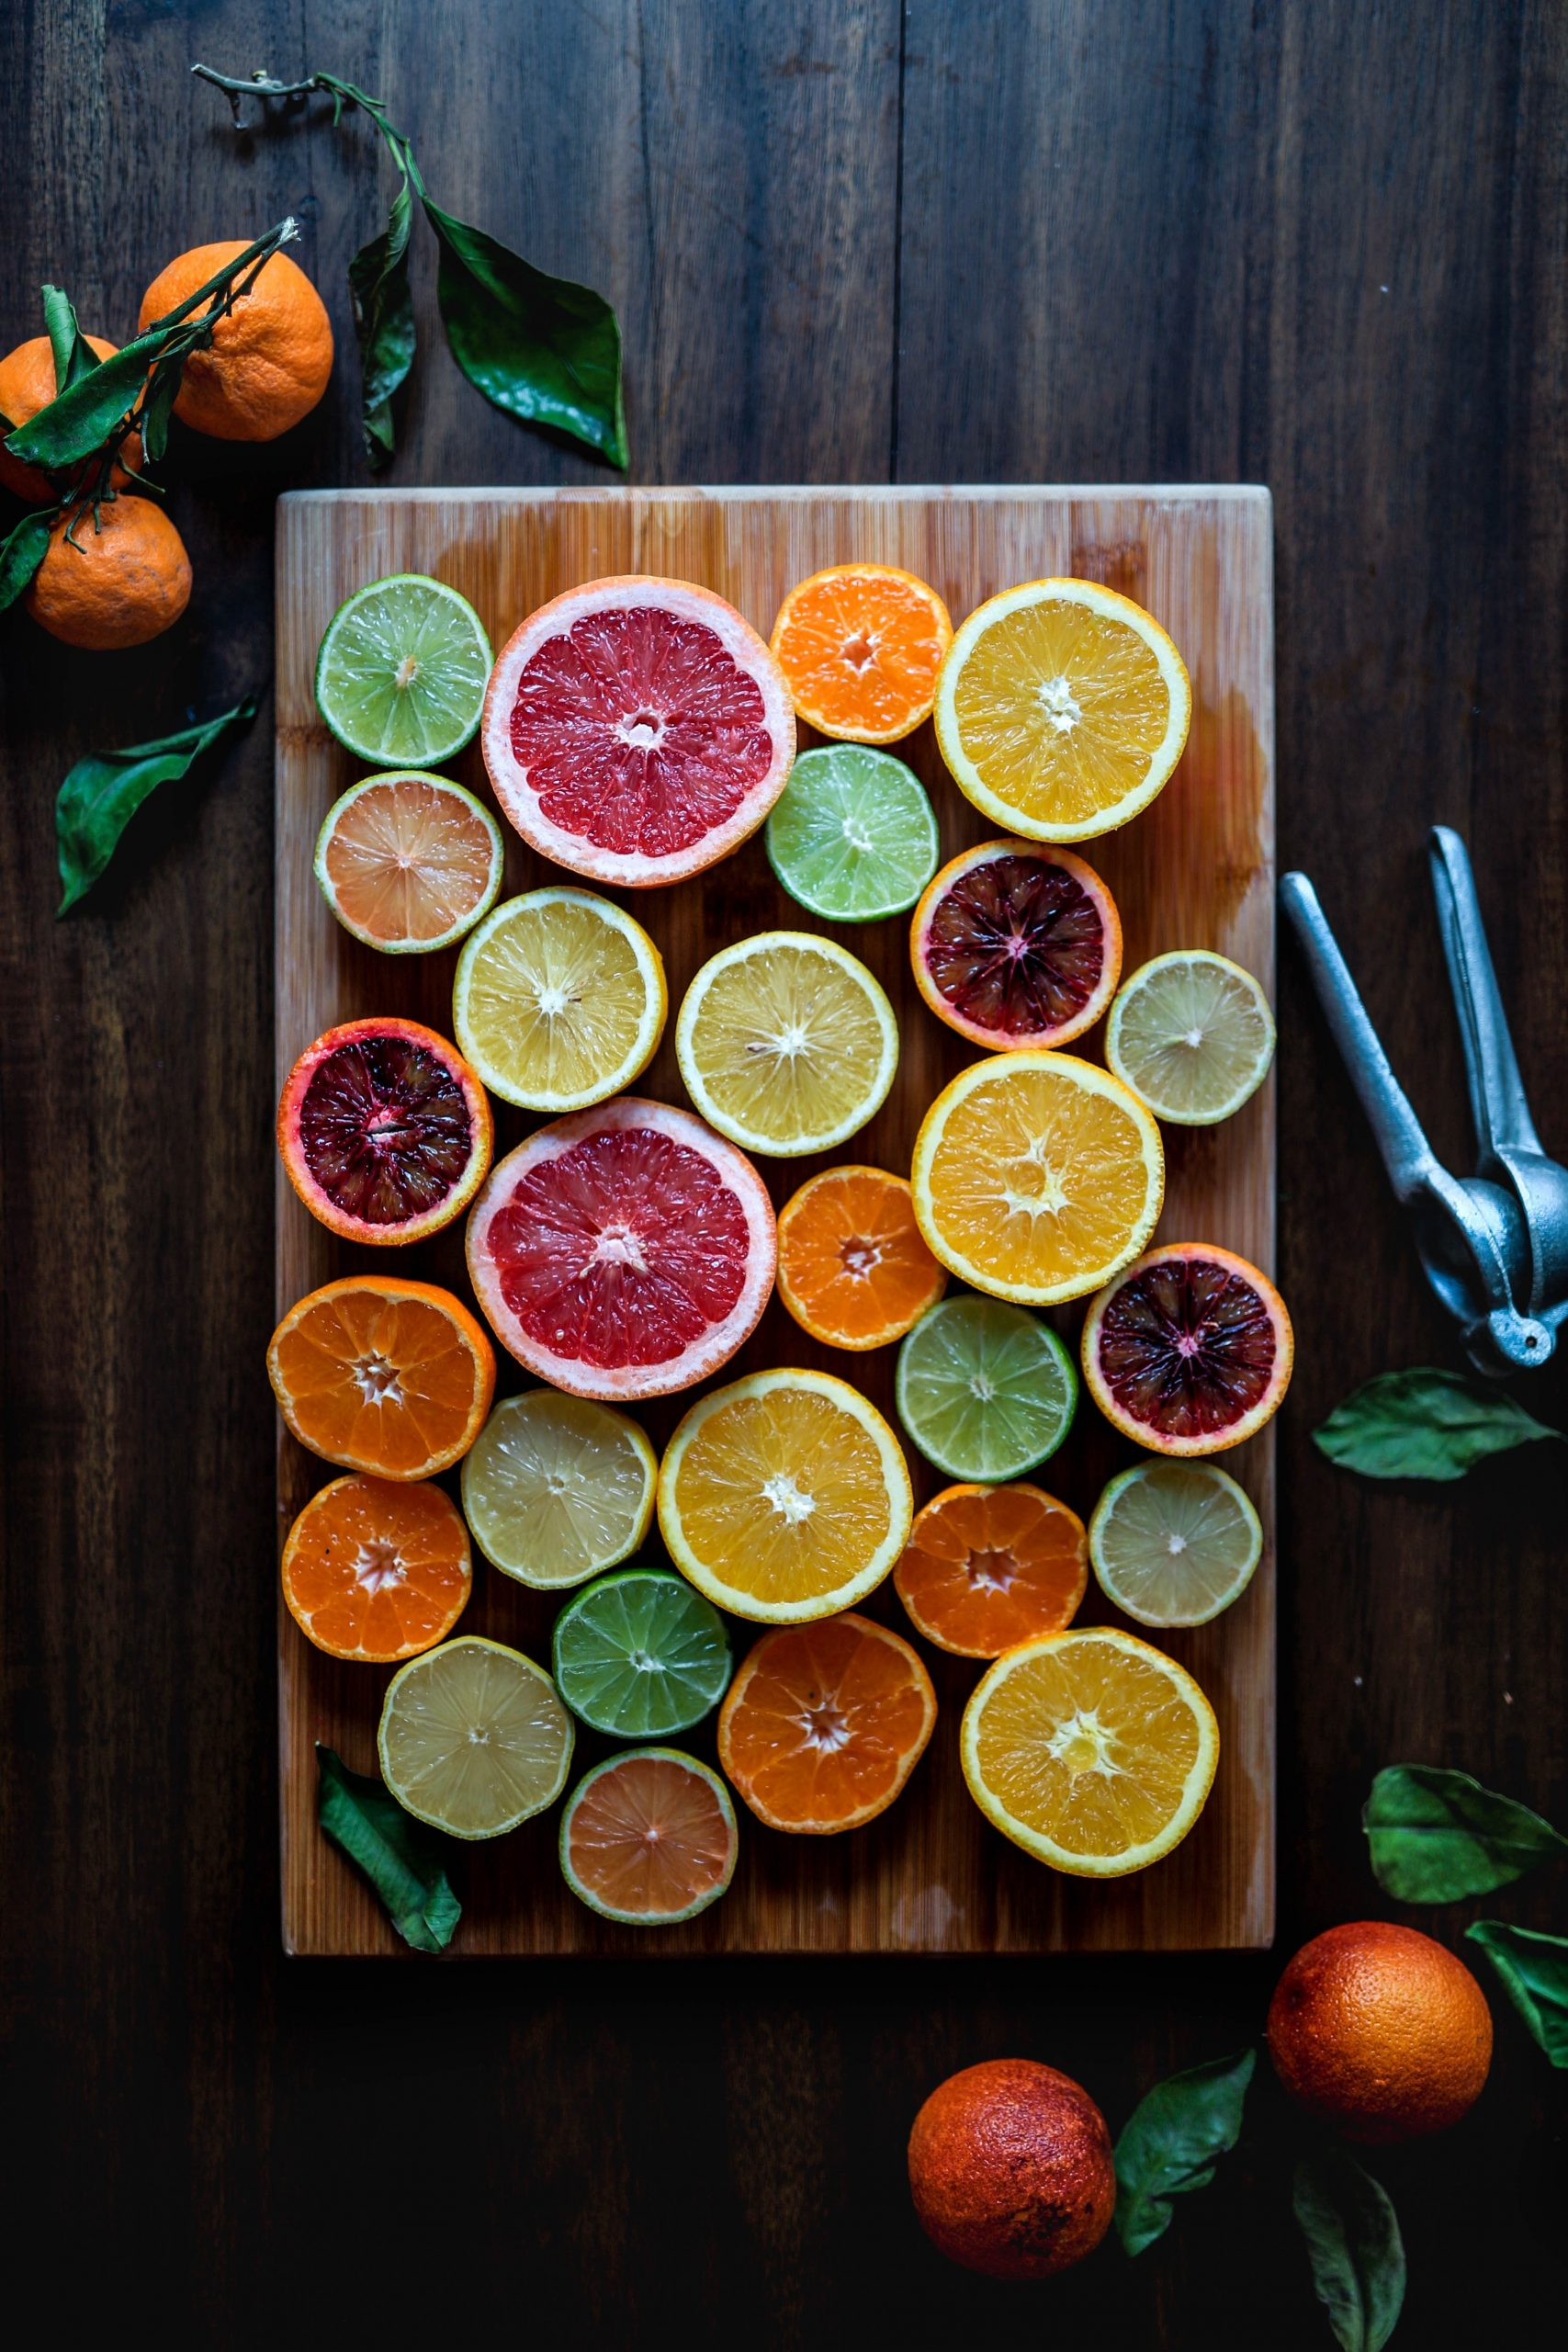 Different kinds of oranges on a cutting board